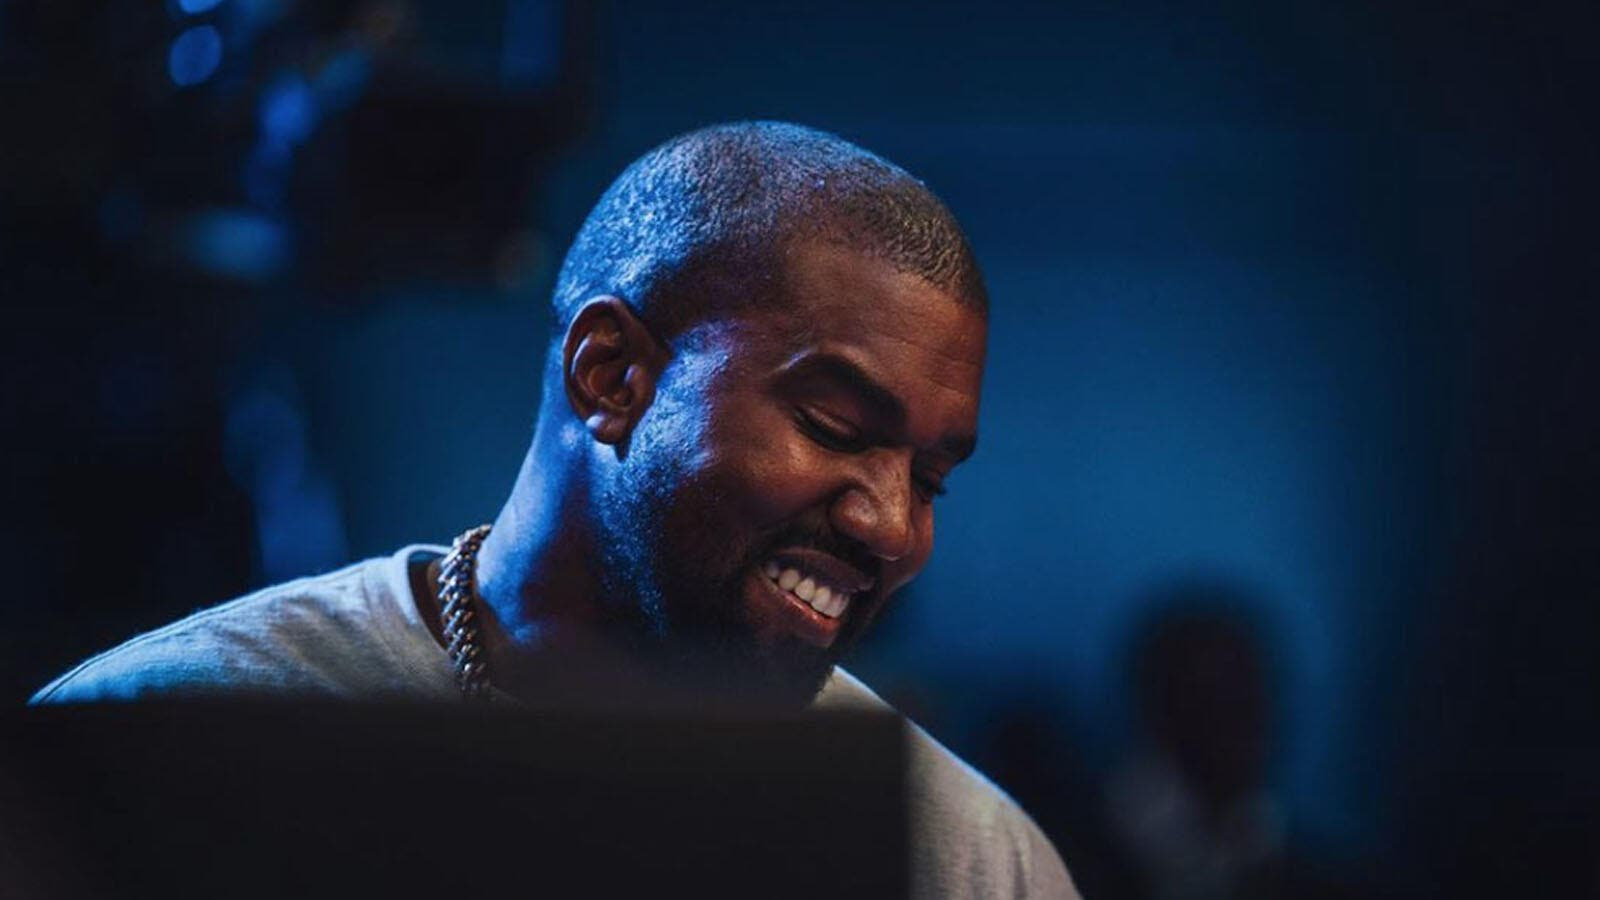 West's last solo album titled Ye was released in June 2018.